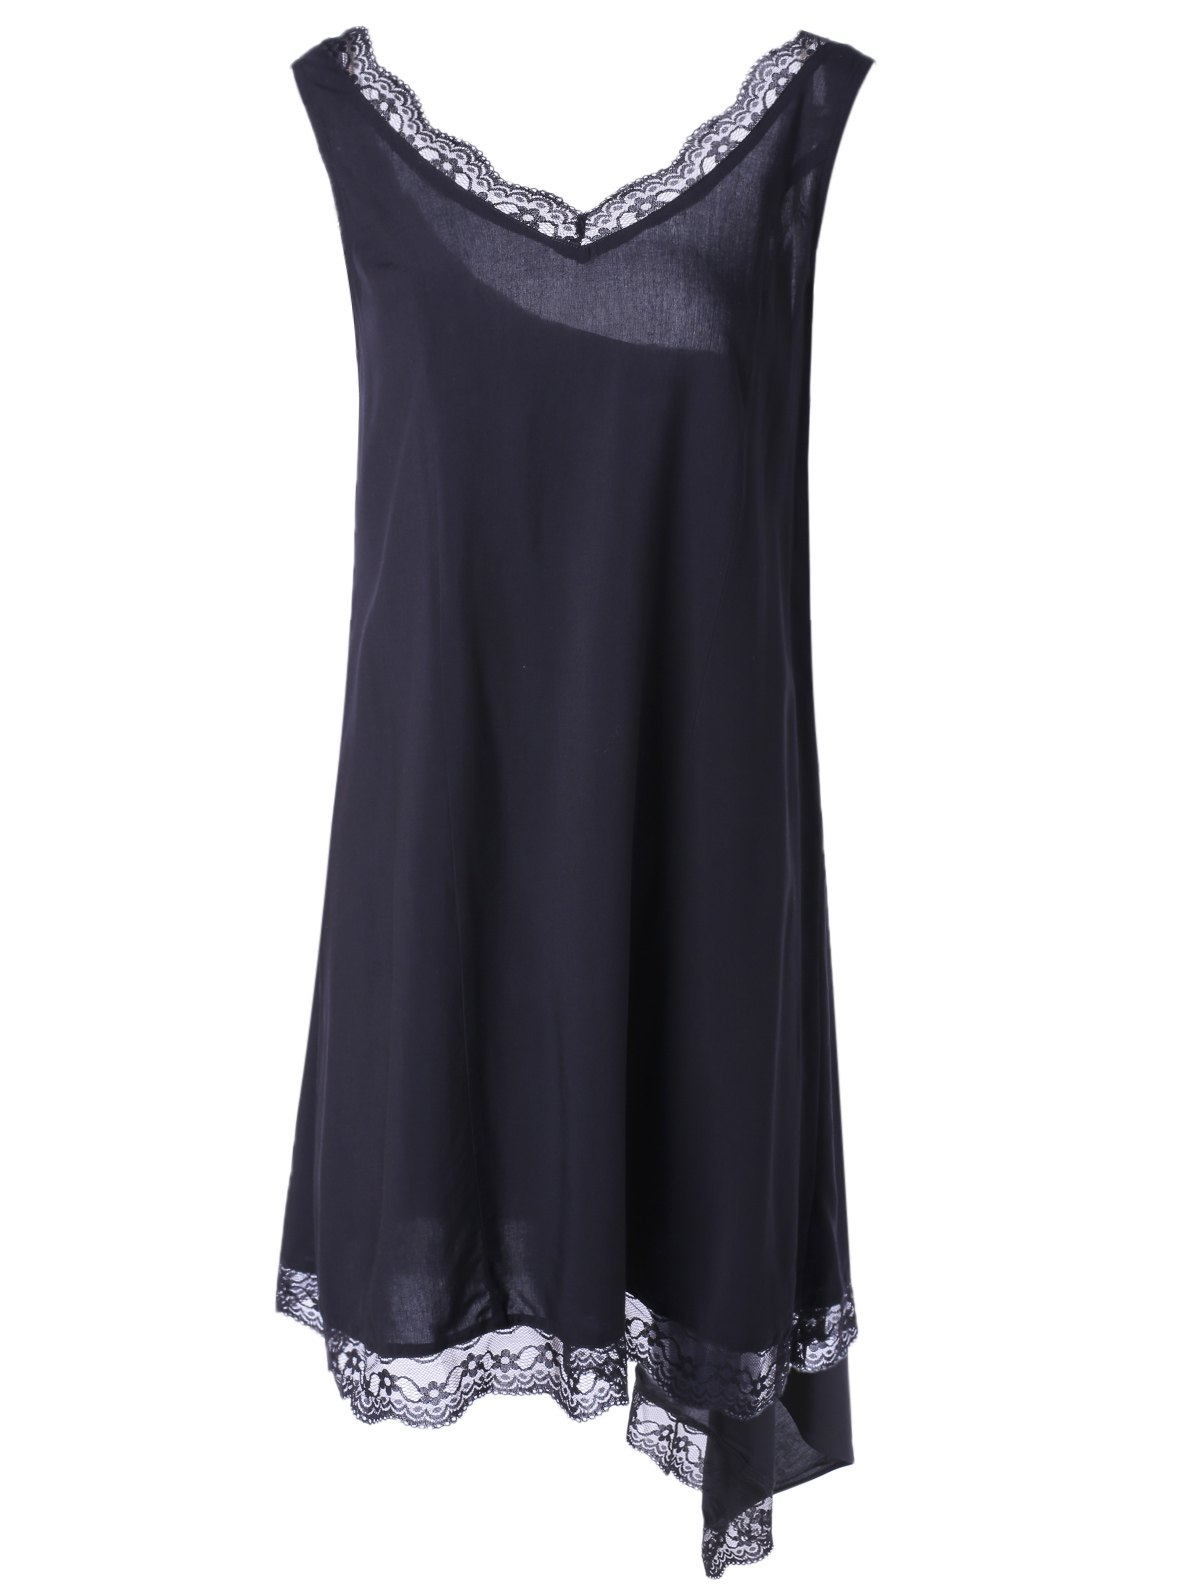 Fashionable Women's V-Neck Sleeveless Asymmetric Lace Dress - BLACK S